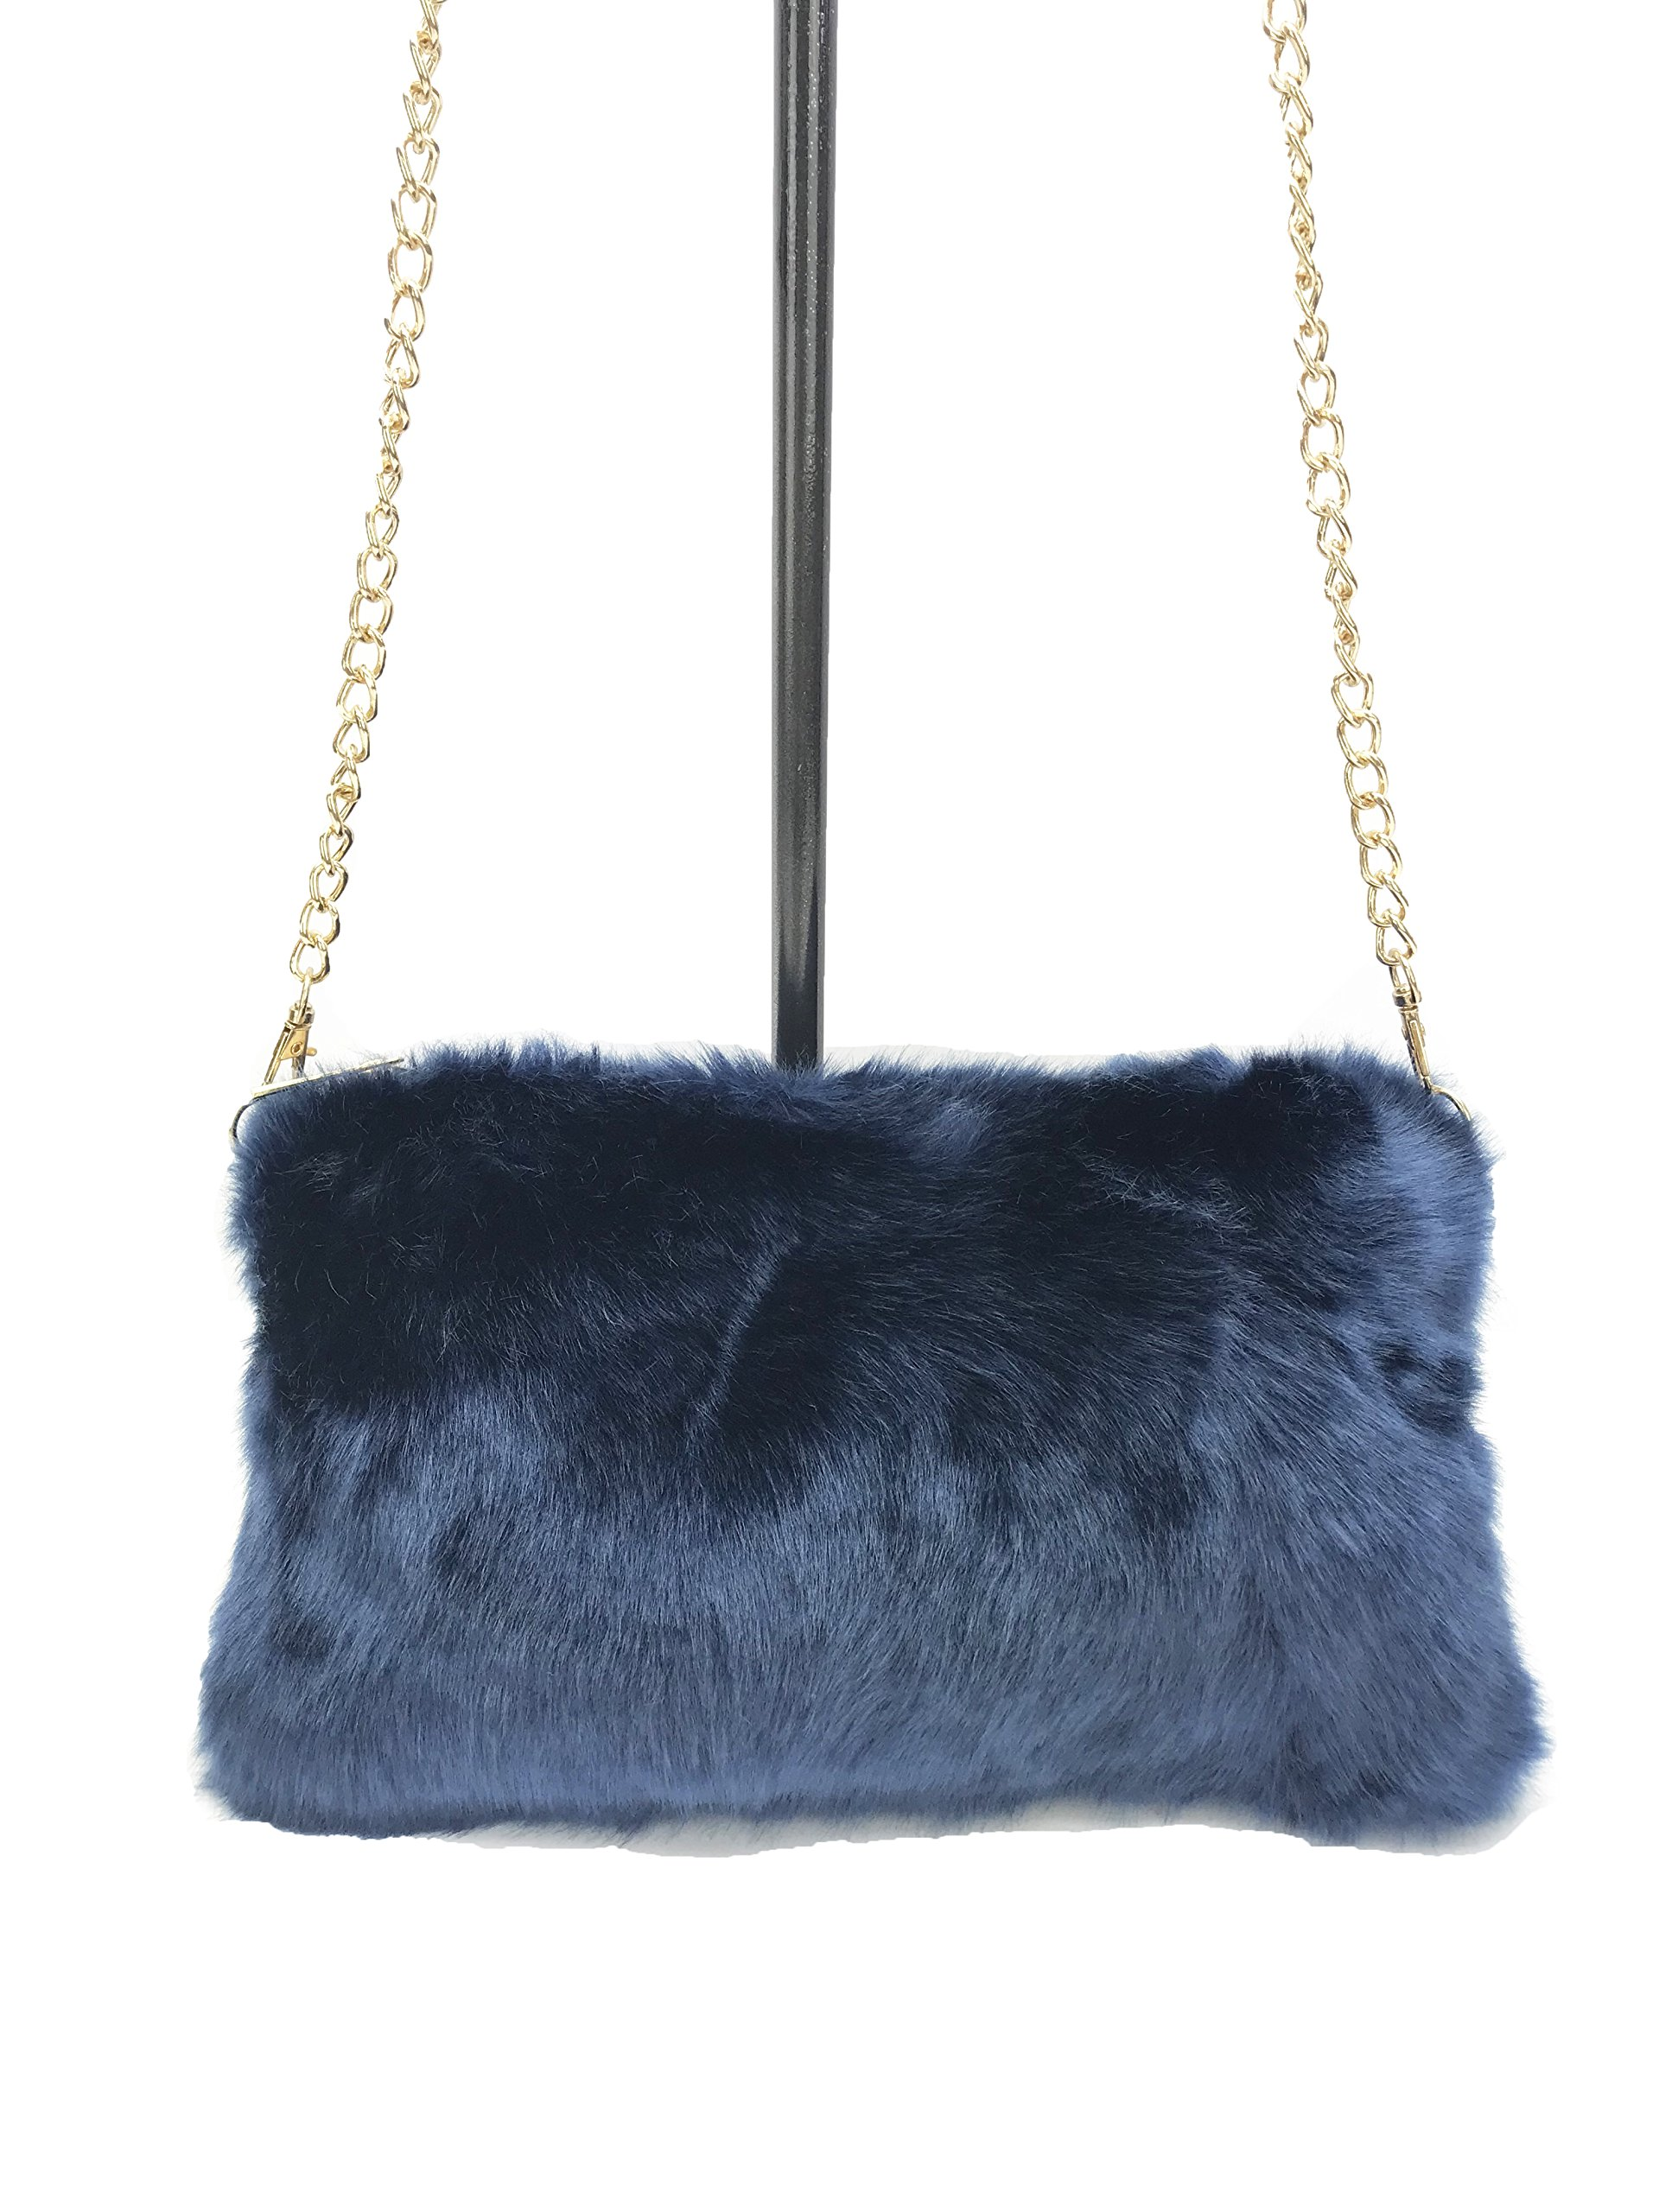 GoodCape MIA series faux fur solid color sling bag with gold chain and zipper pocket